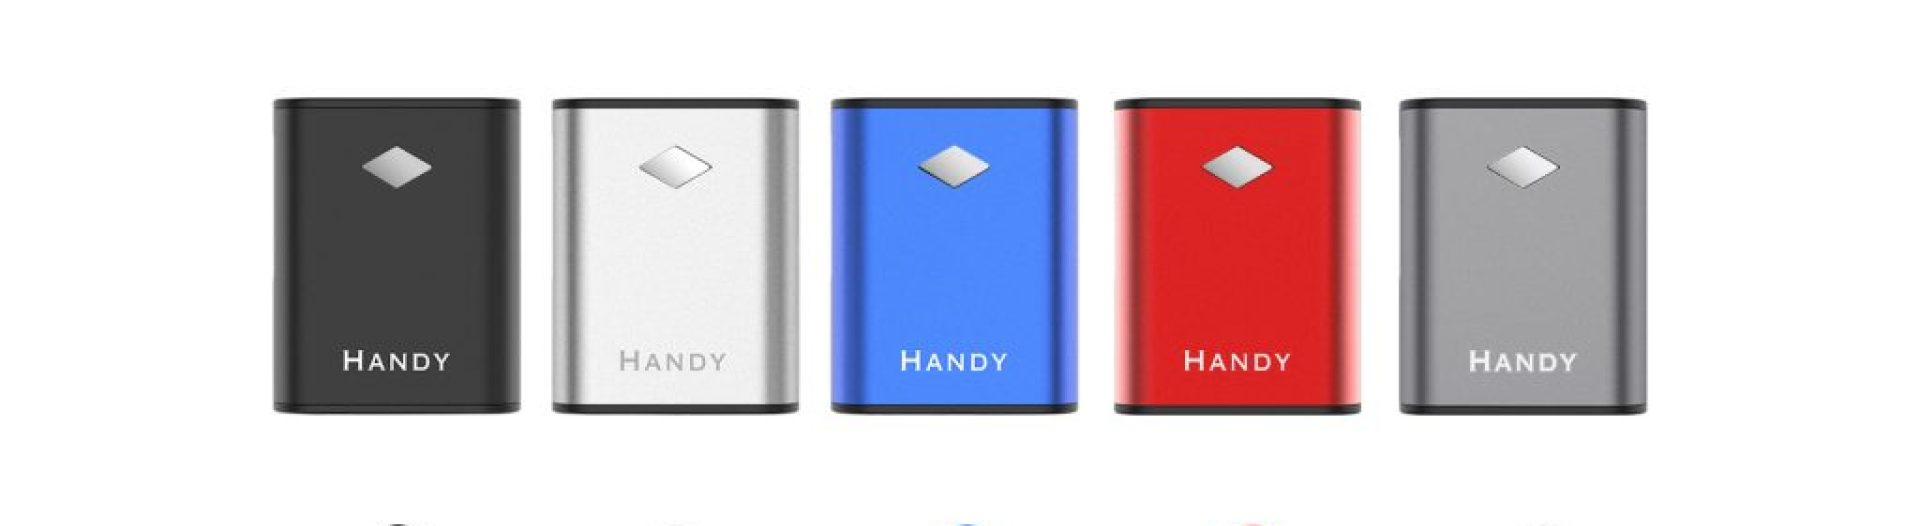 Yocan Handy Vape Battery come with 5 colors.